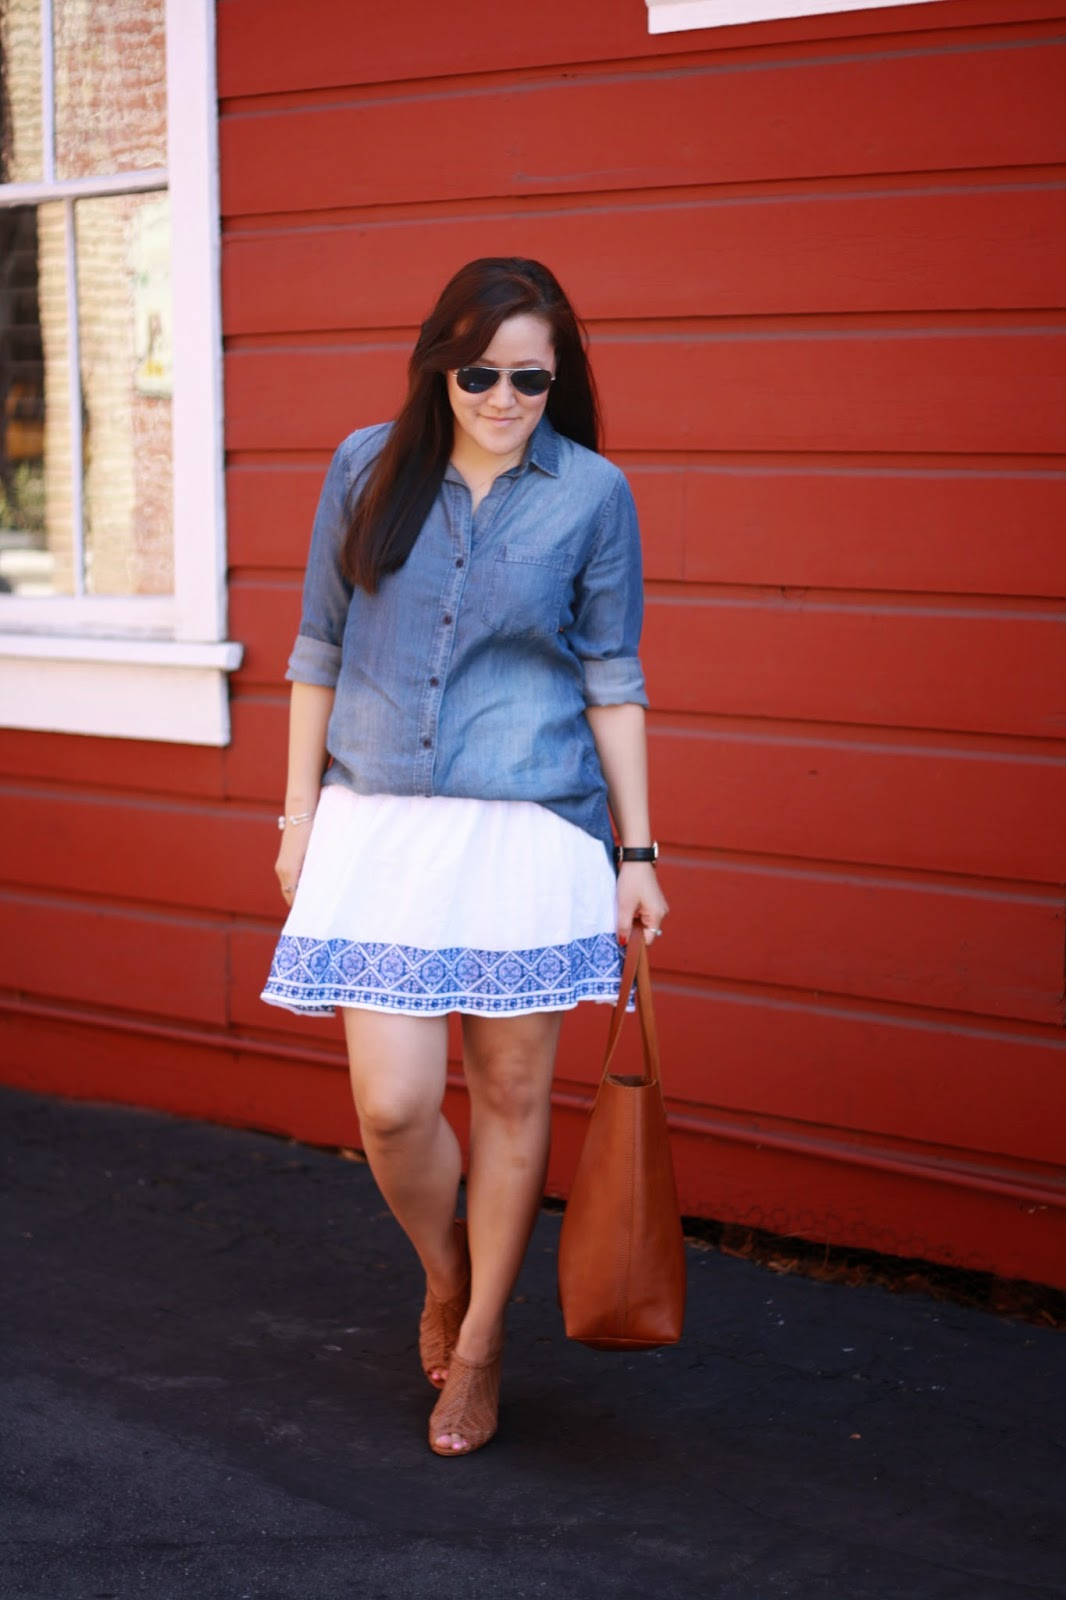 simplyxclassic, bella dahl, old navy, madewell, aldo shoes, blogger, ocblogger, mommy blogger, style, blogger